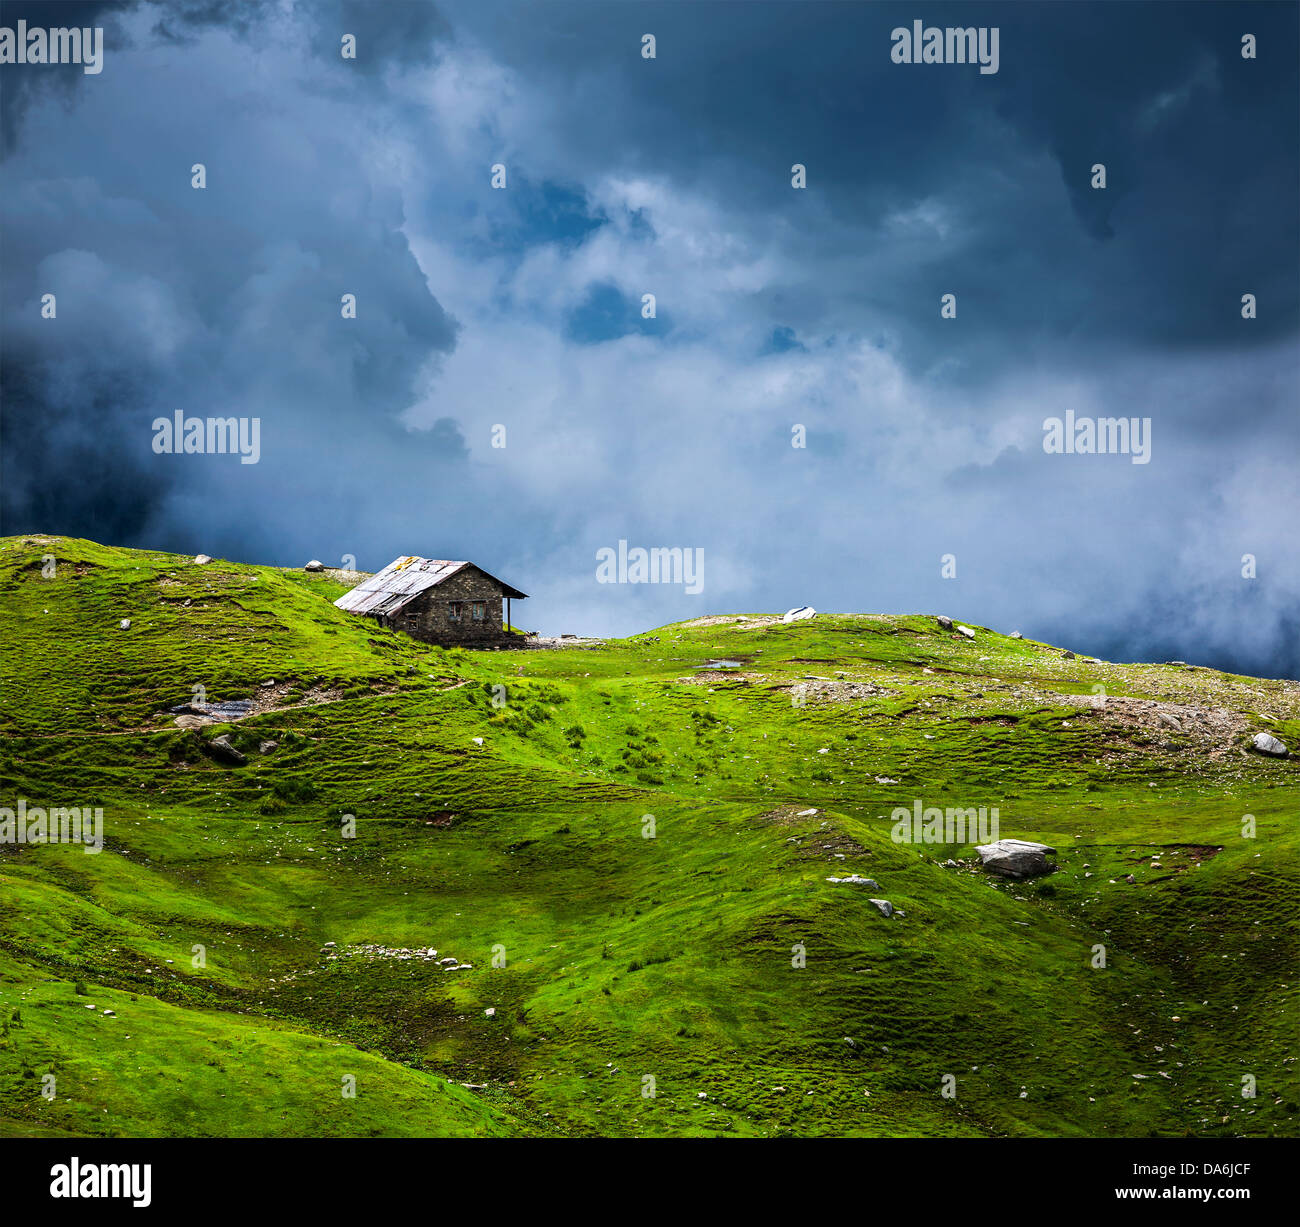 serenity serene lonely scenery background concept - house in hills